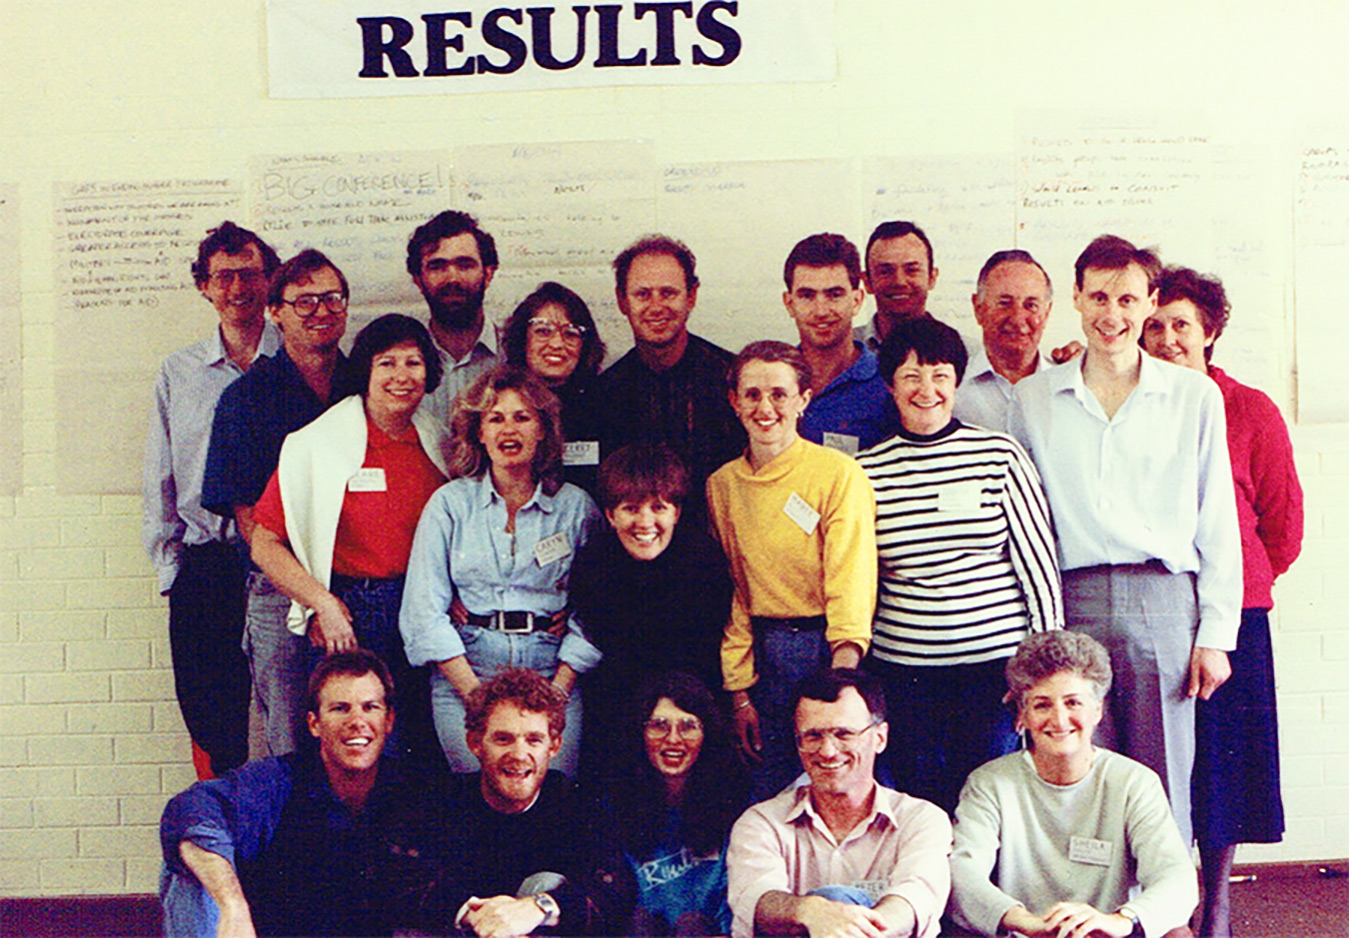 RESULTS National Conference - sometime in the 1980's...